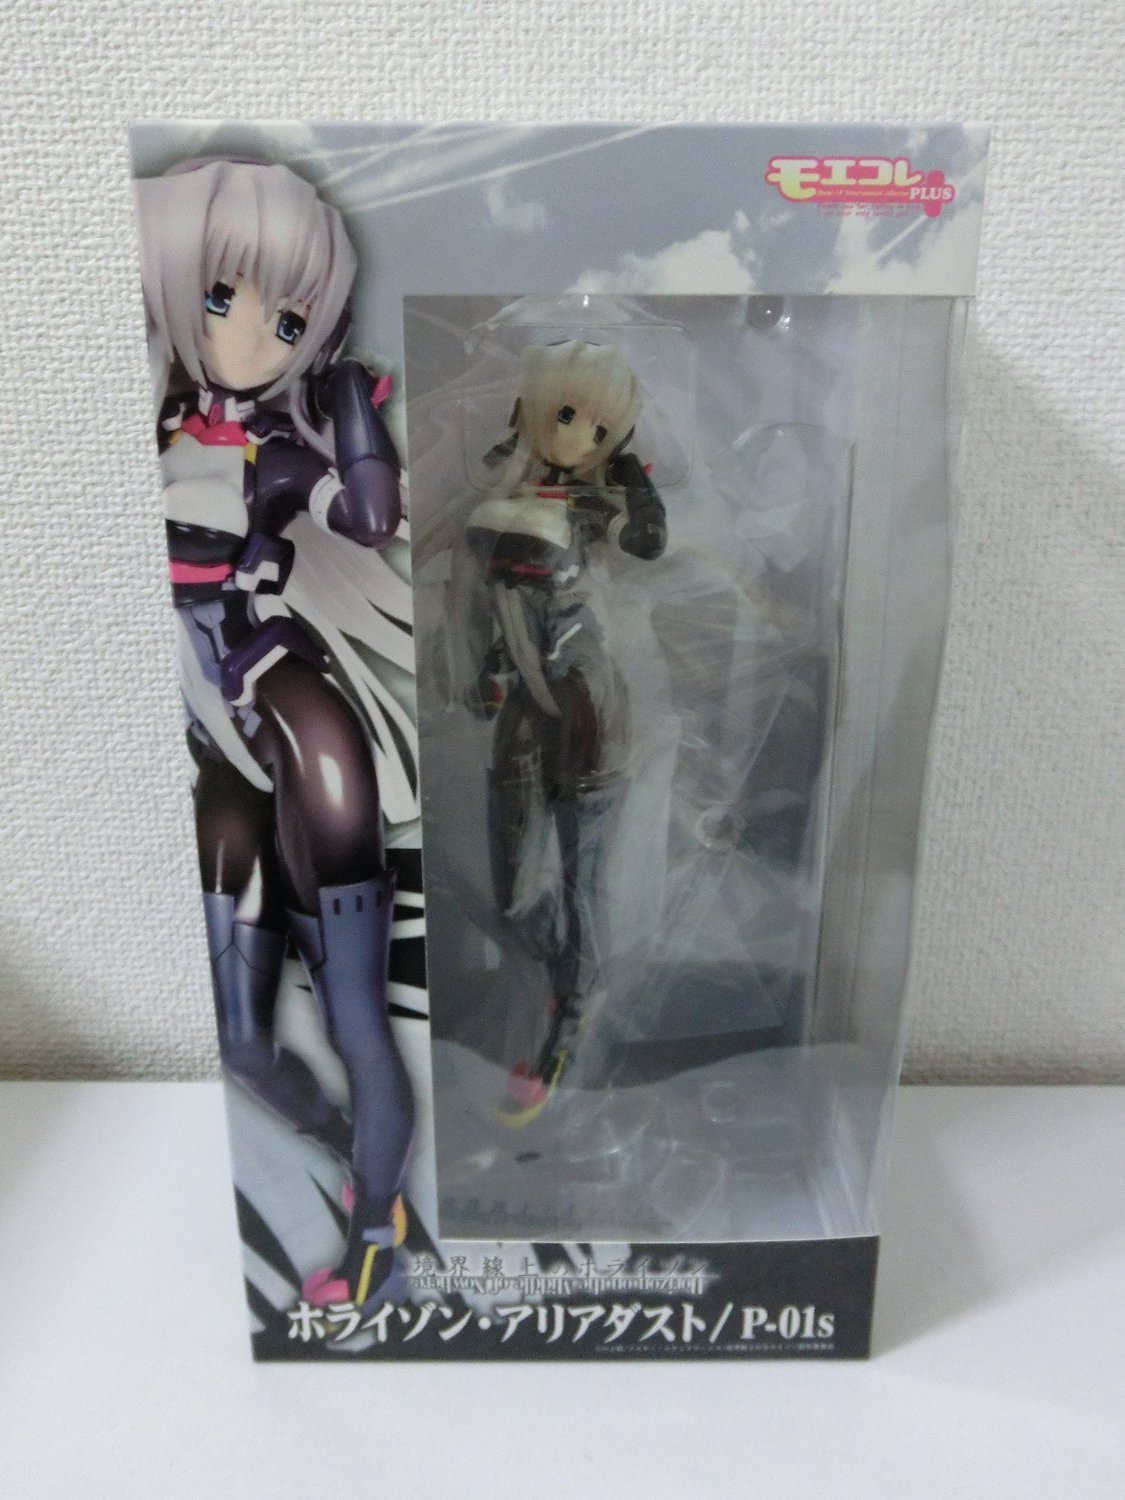 Moekore PLUS No.33 Middle of Nowhere Horizon Aria / Staub / Aria P-01s 1/8 PVC Figure (Japan-Import) 6bbb7e